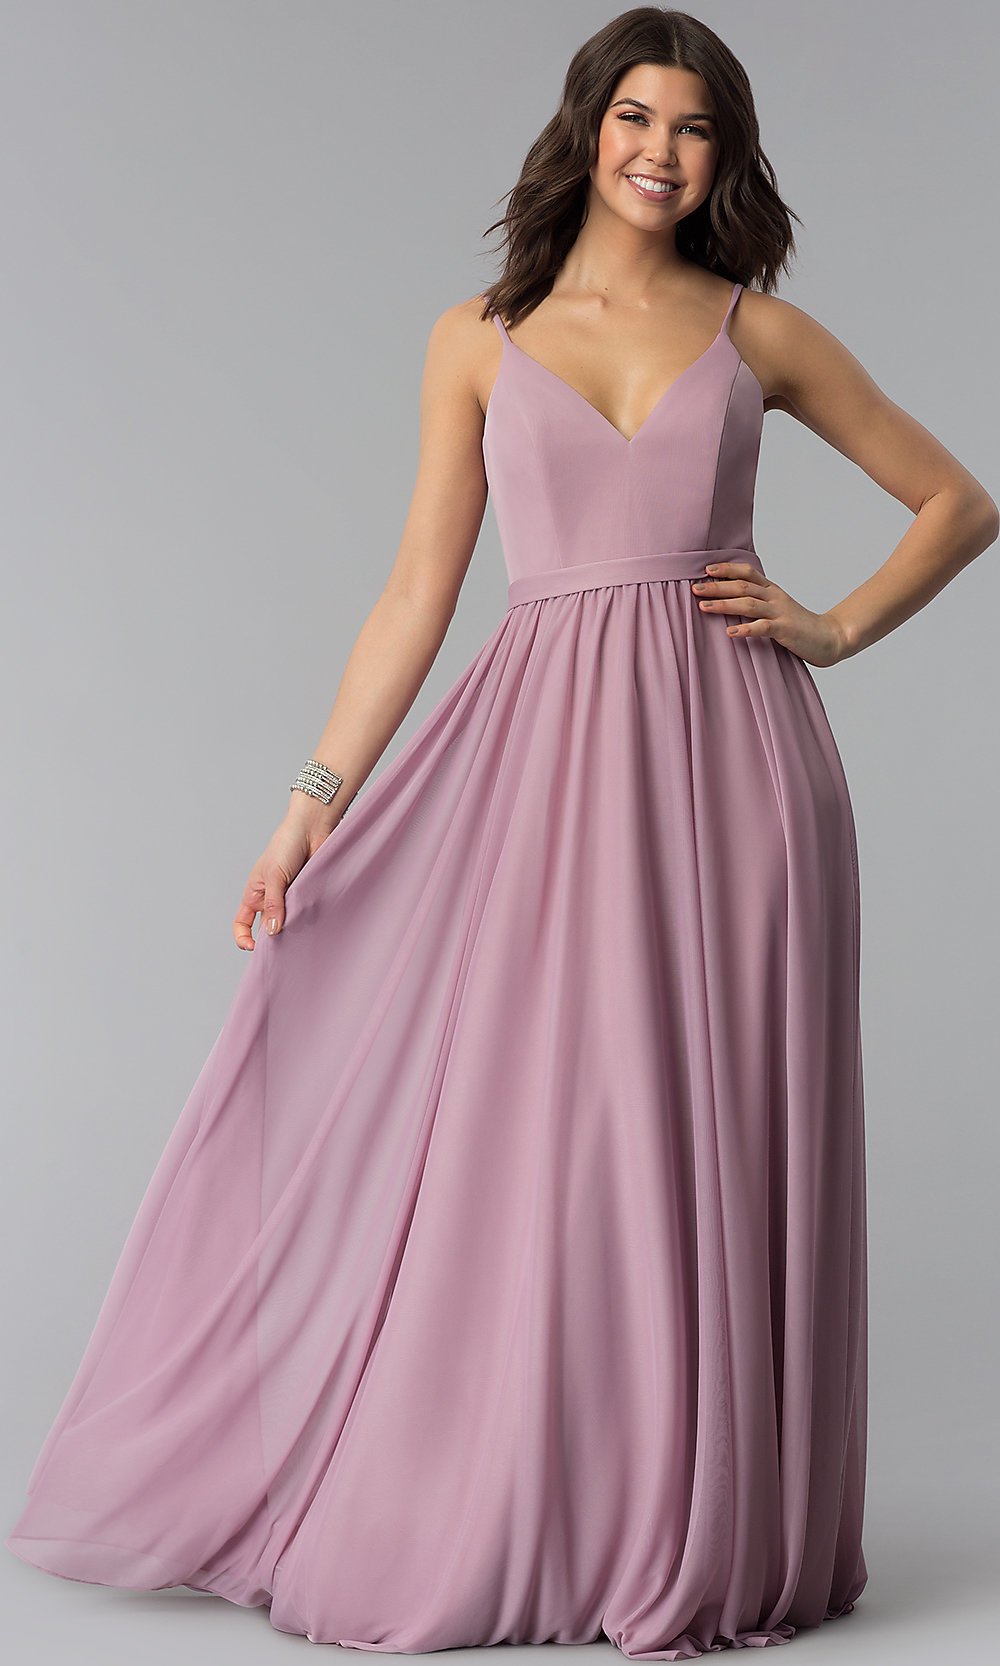 Fashion online websites that ship to canada